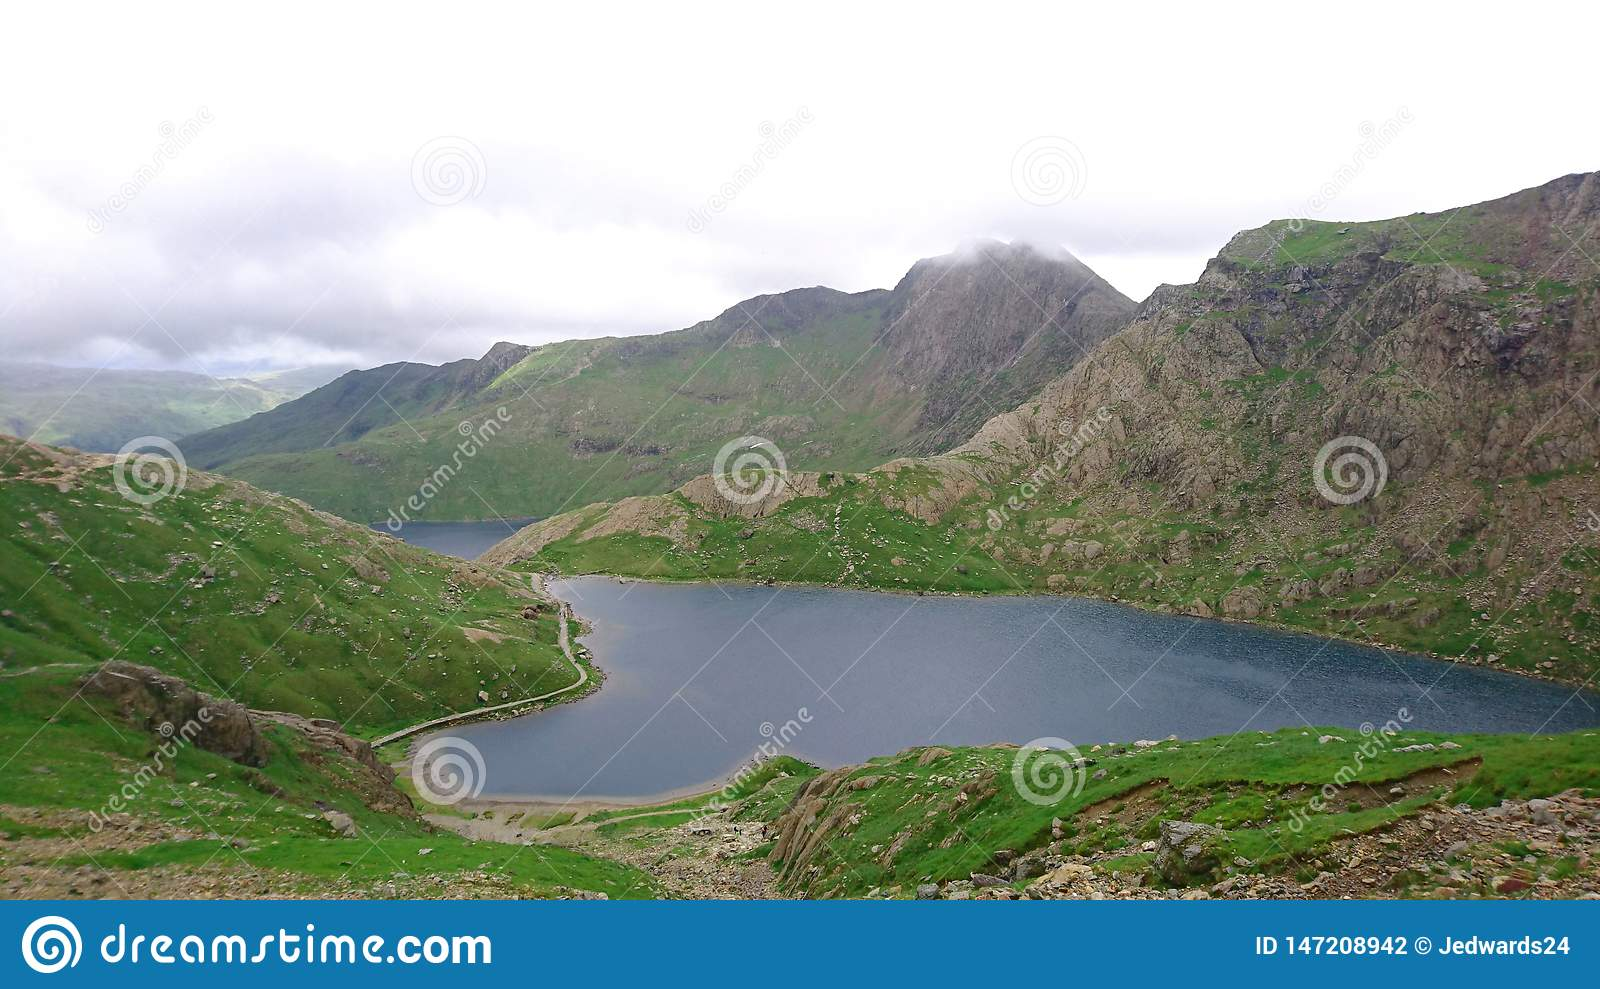 High view looking down over lake on PYG trail on Mount Snowdon in Snowdonia National Park, Wales, UK